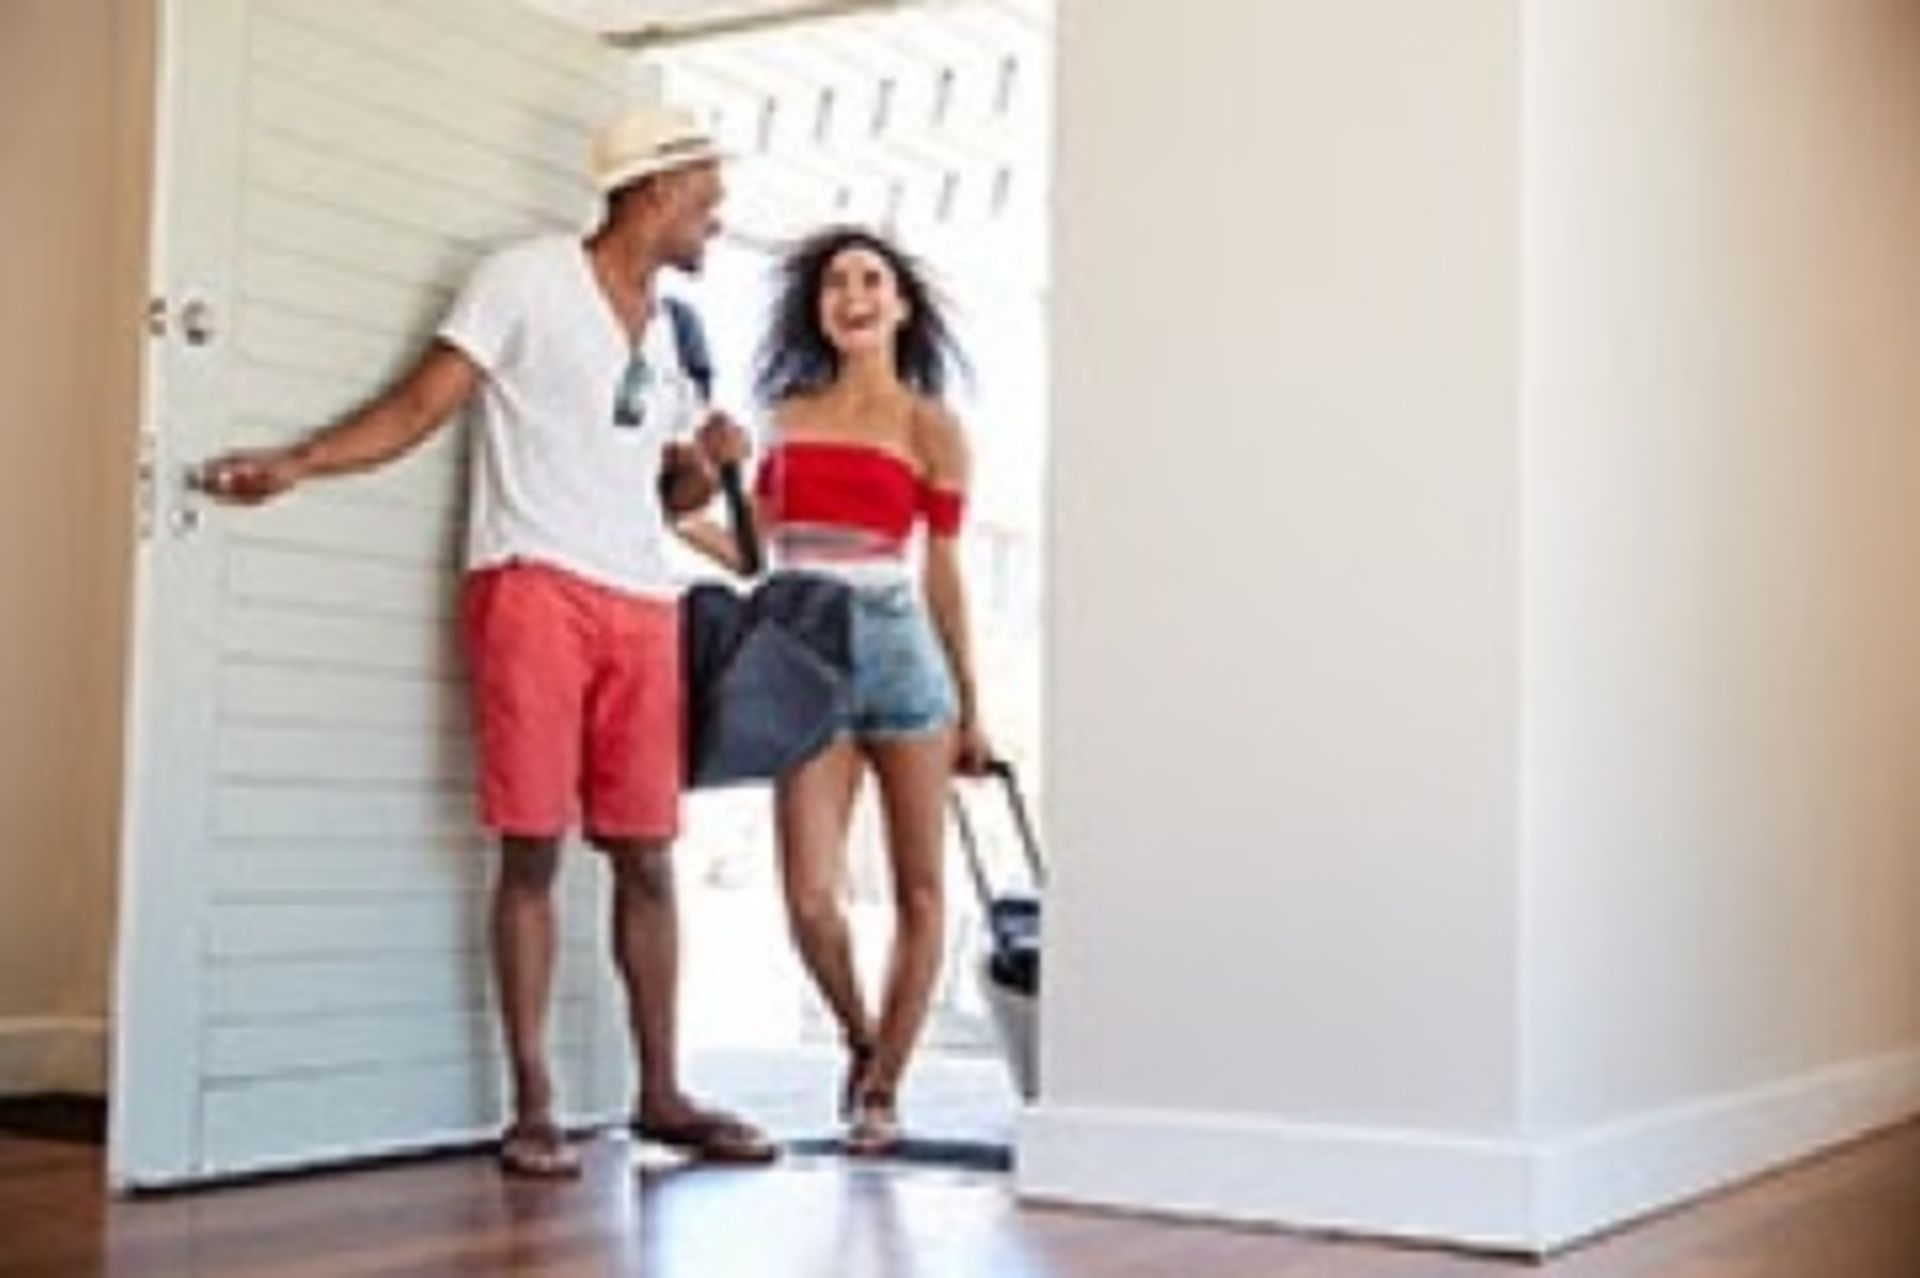 3 Things to Consider Before Listing Your Home as a Short-Term Rental